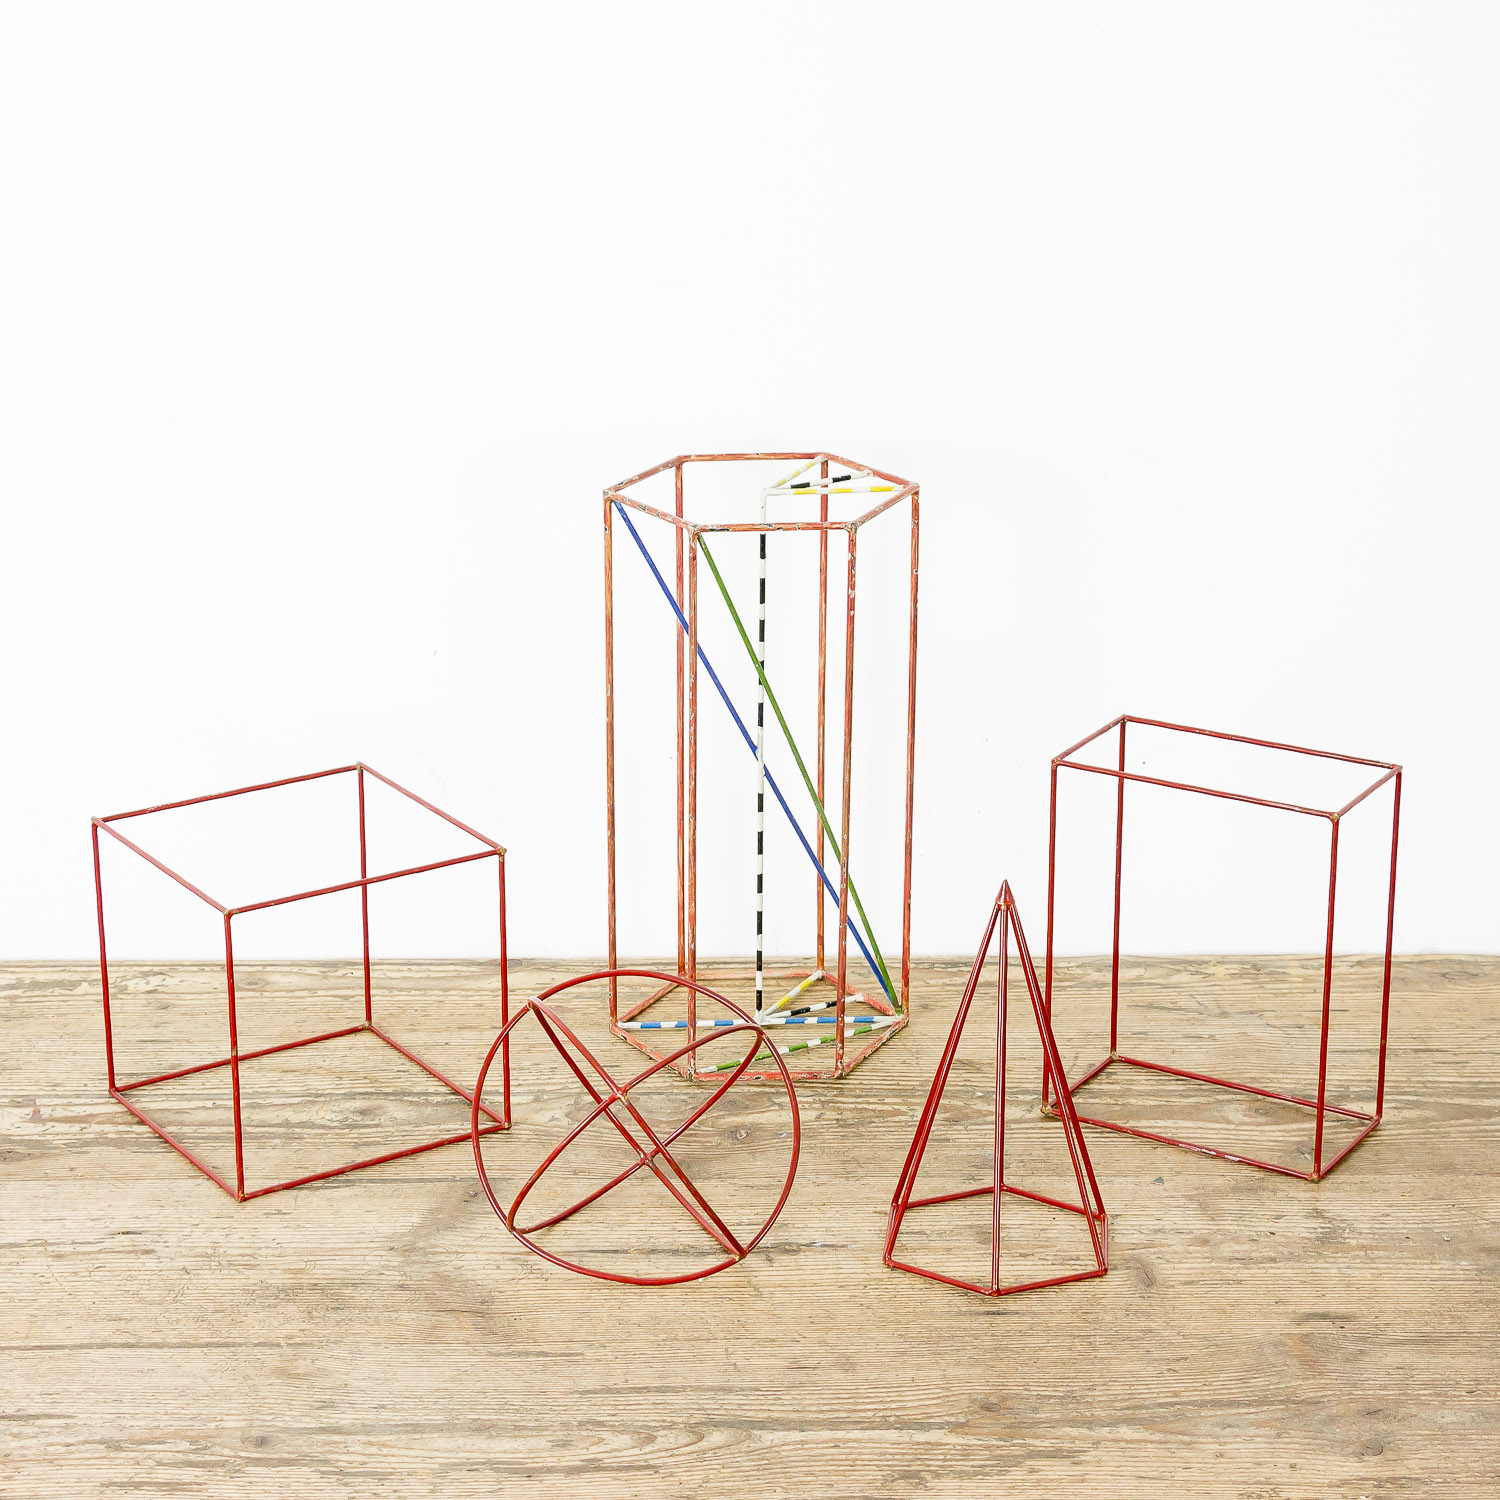 Set of 5 geometric models metal